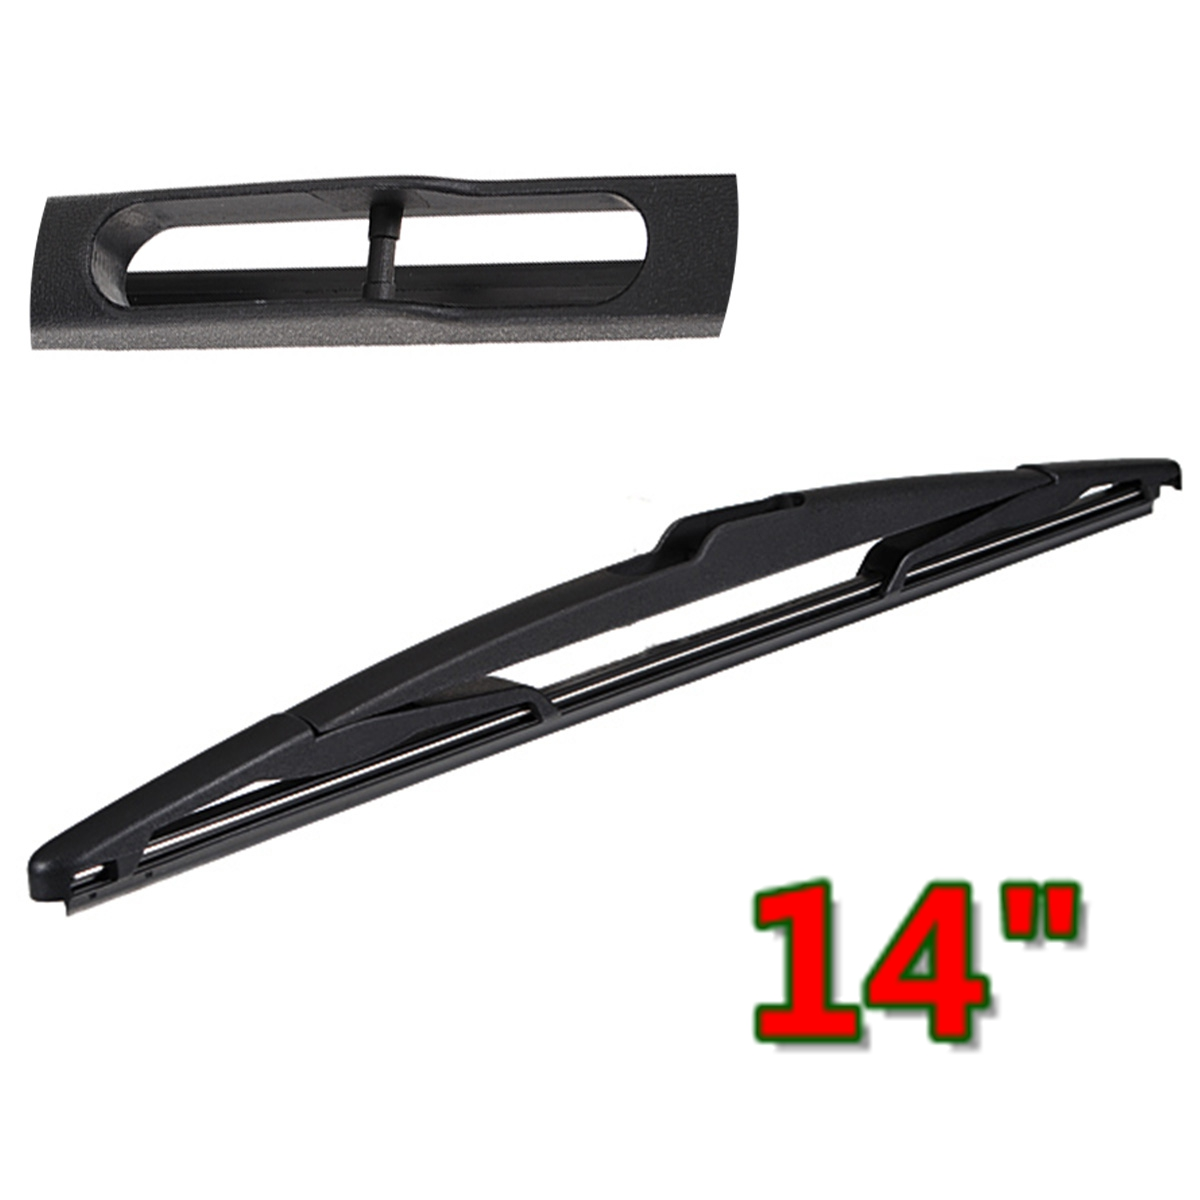 Rear Window Wind Shield Windscreen Wiper Blade For Peugeot 307 206 2000 2001 2002 2003 2004